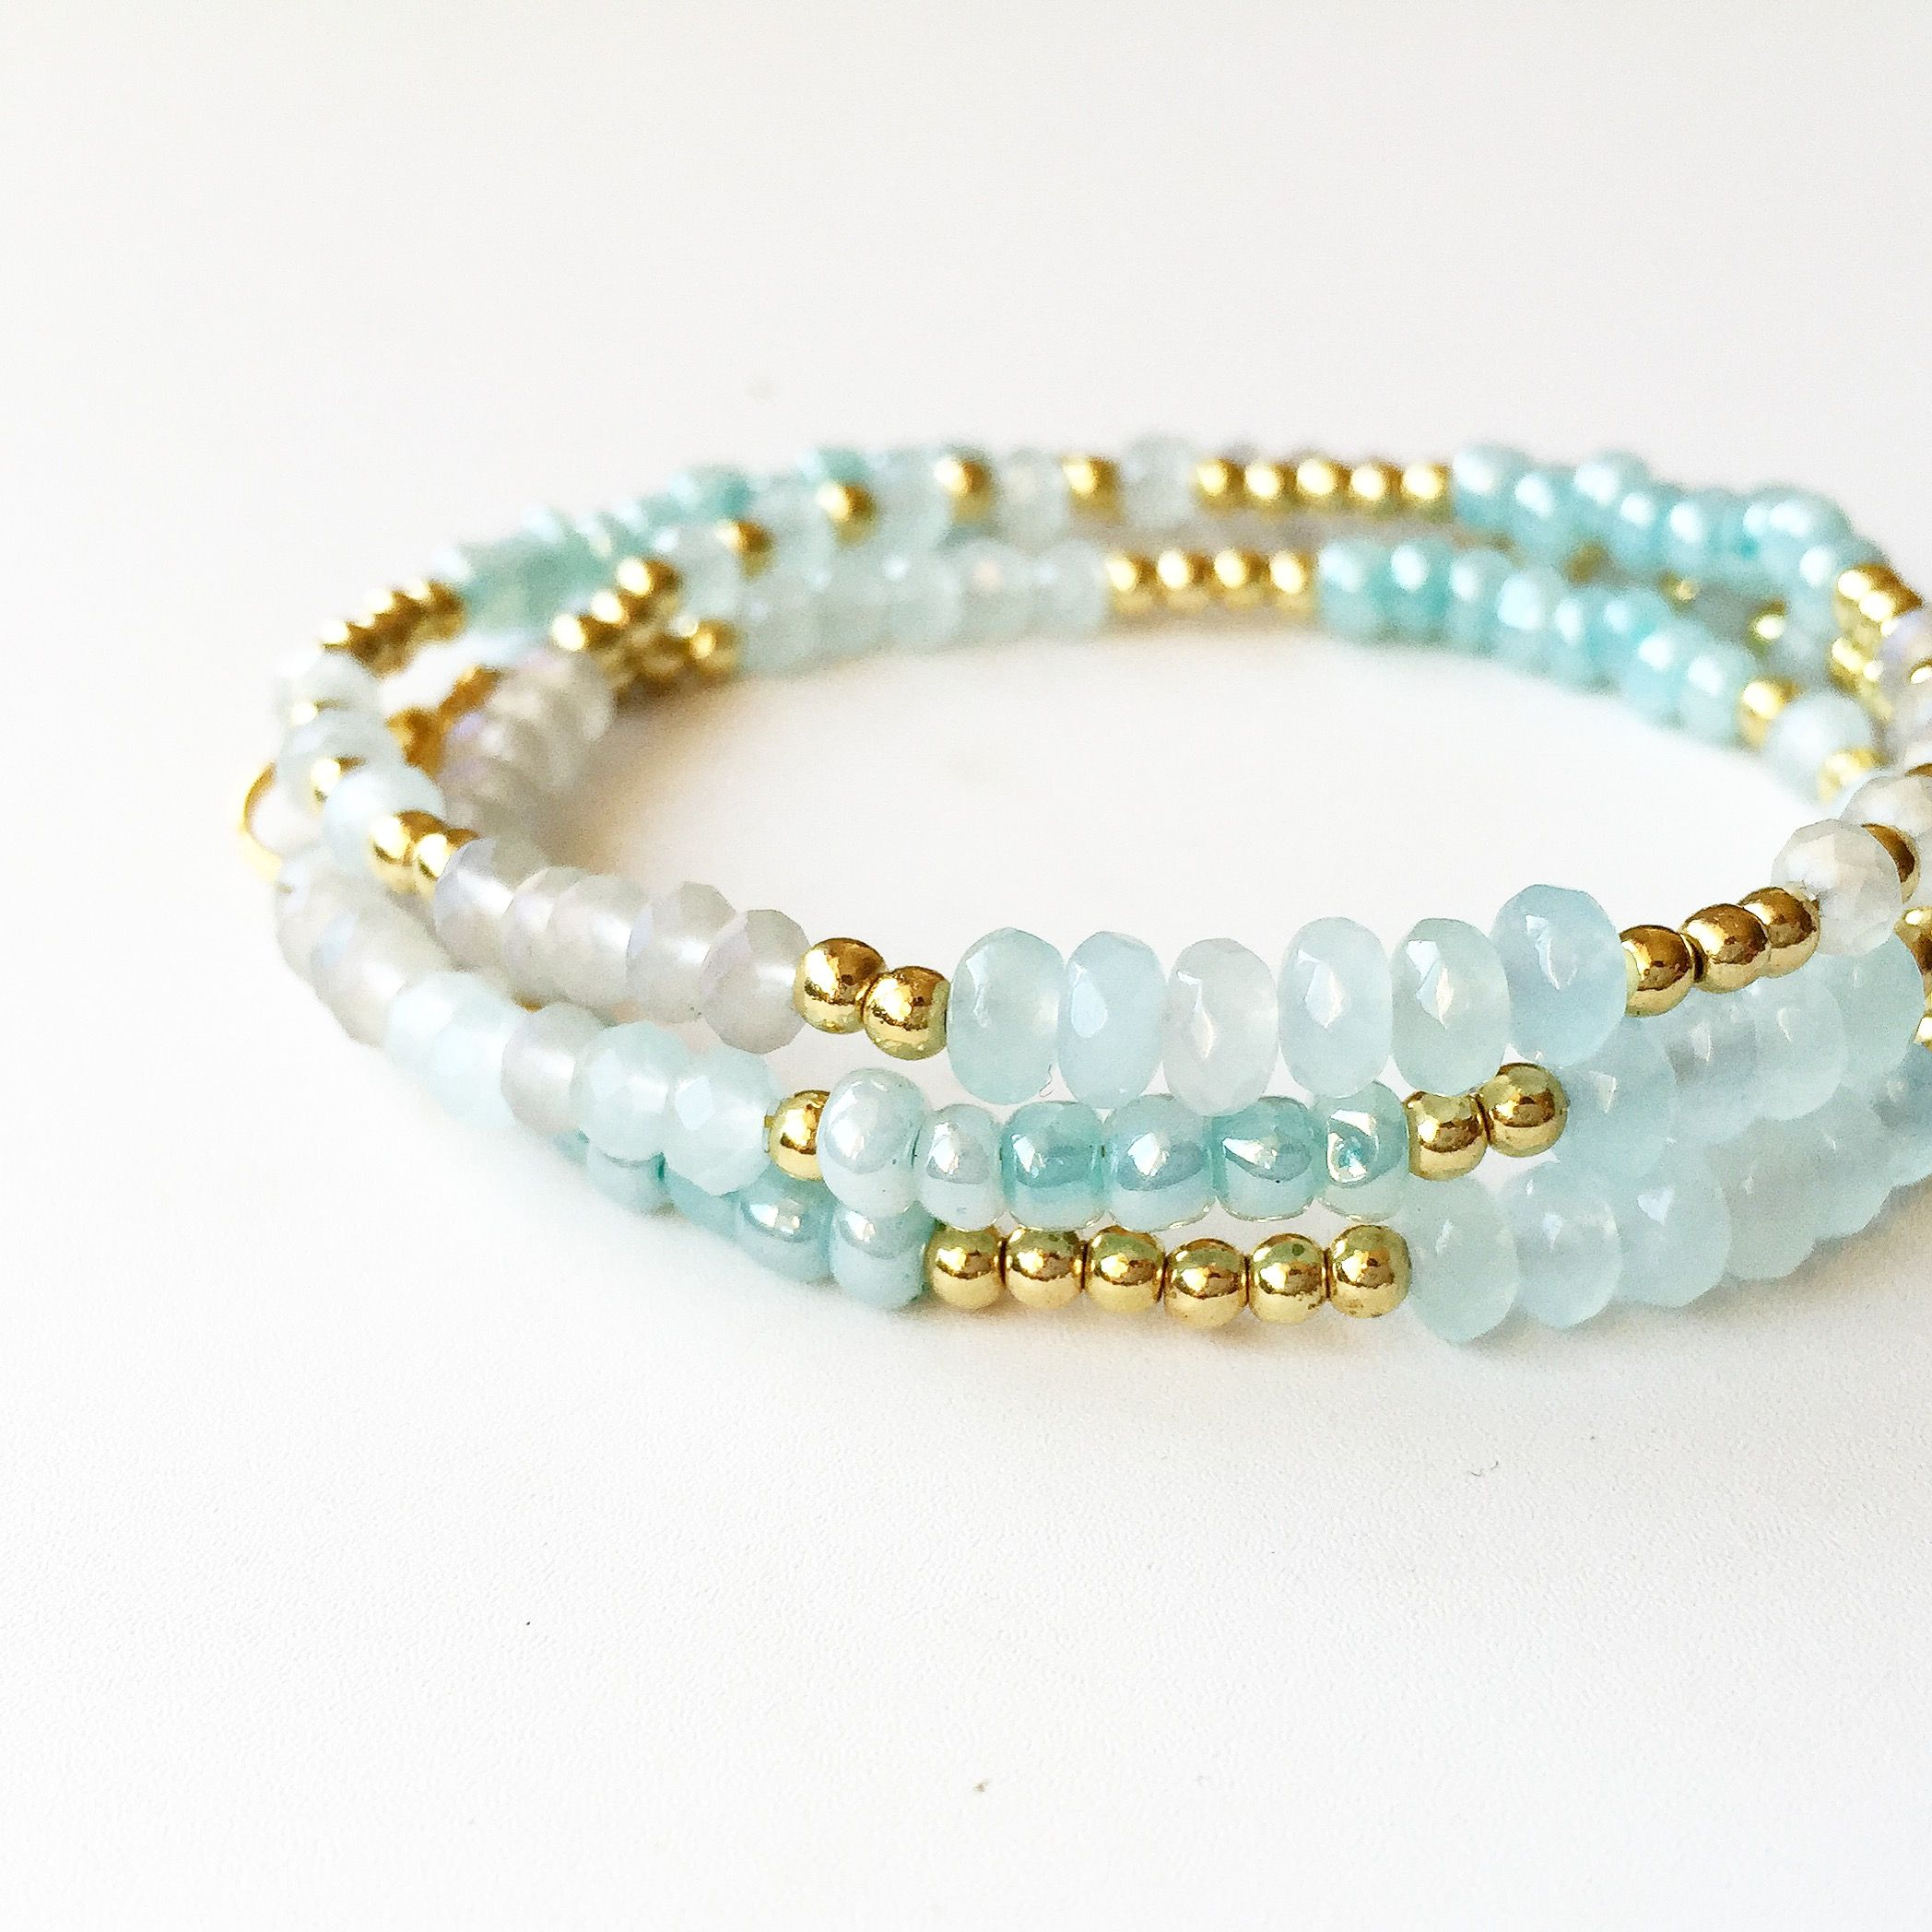 Aquamarine, turquoise, blue and gold crystal and glass bead bracelet ...